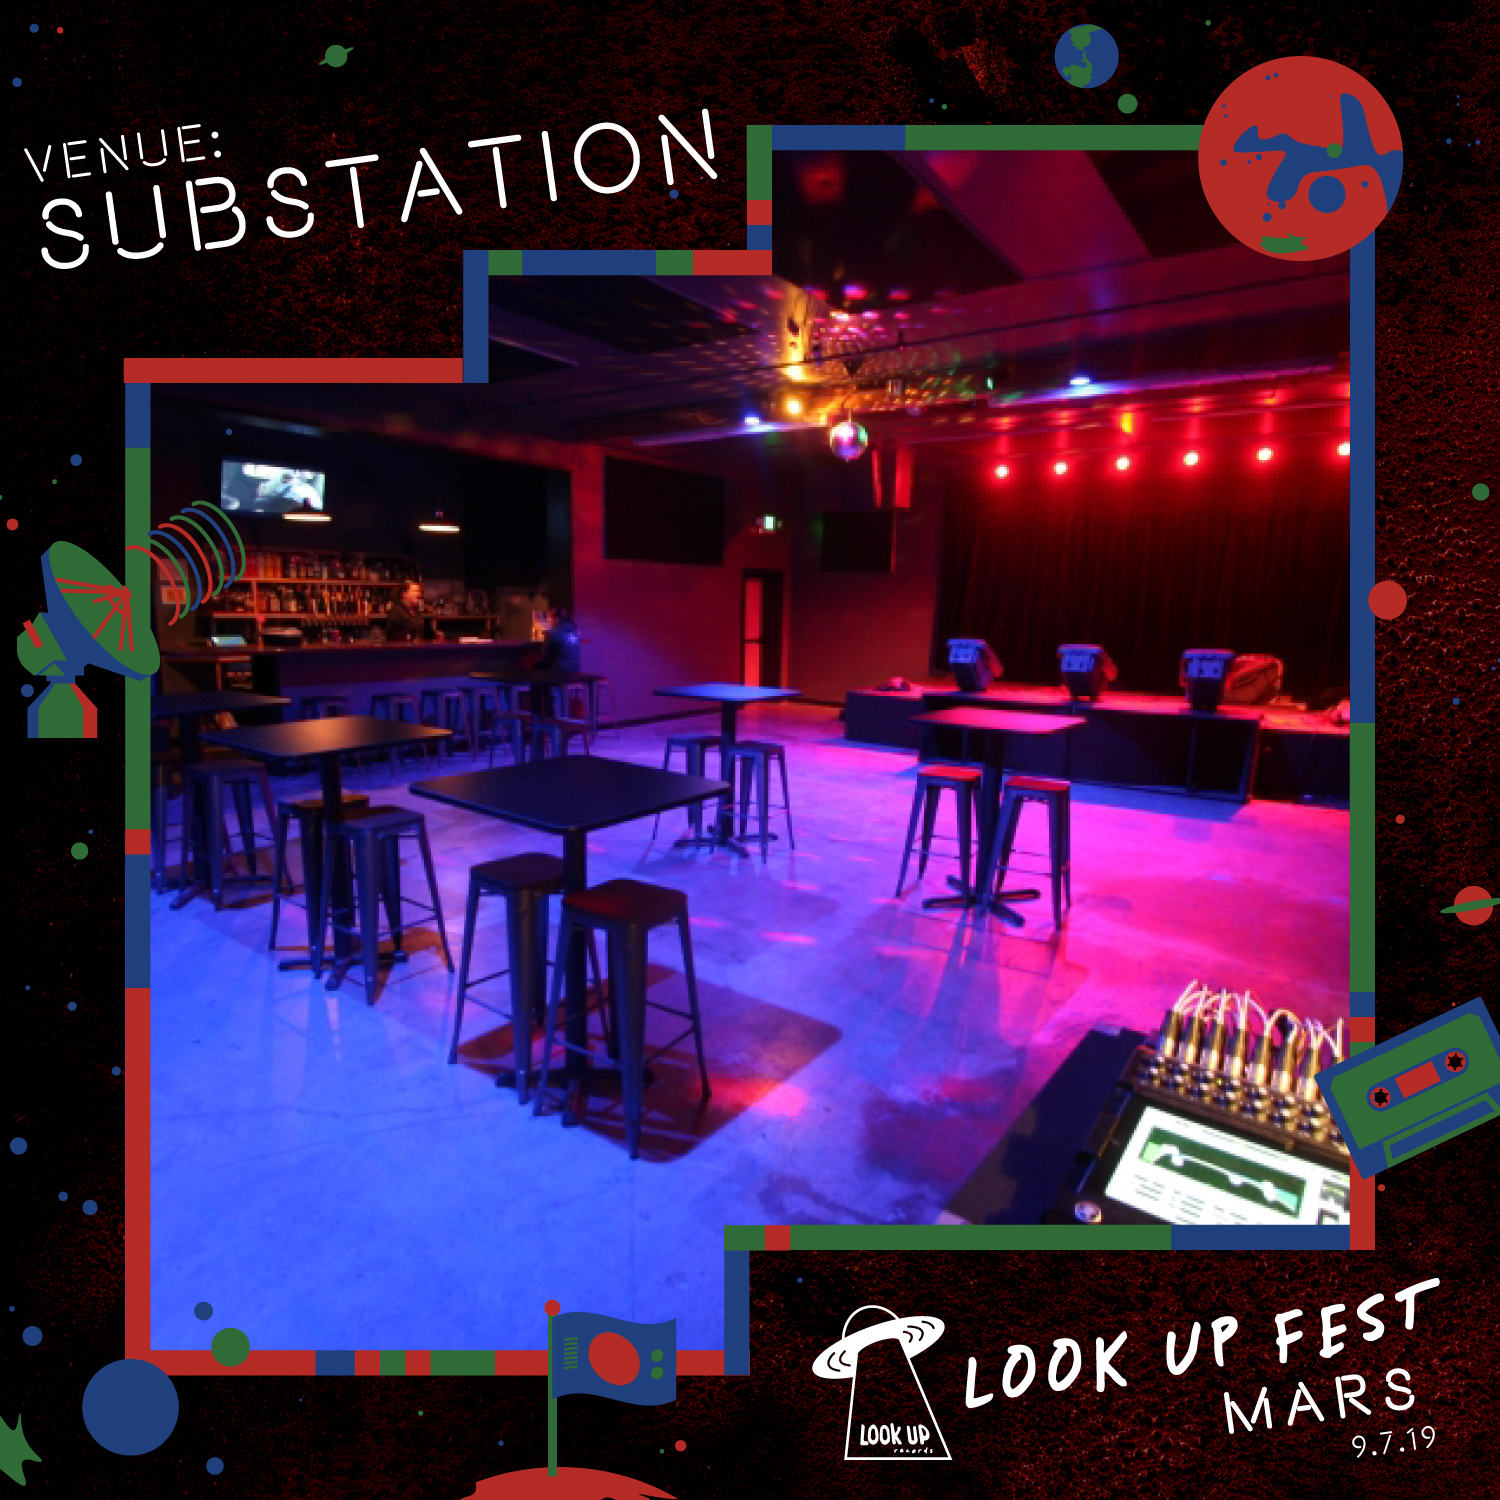 SUBSTATION - We're excited to host this event at Substation, a staple venue in Fremont/Ballard with a track record of supporting the DIY and weird. We've booked three large rooms; two for alternating music stages and one for interactive stuff.